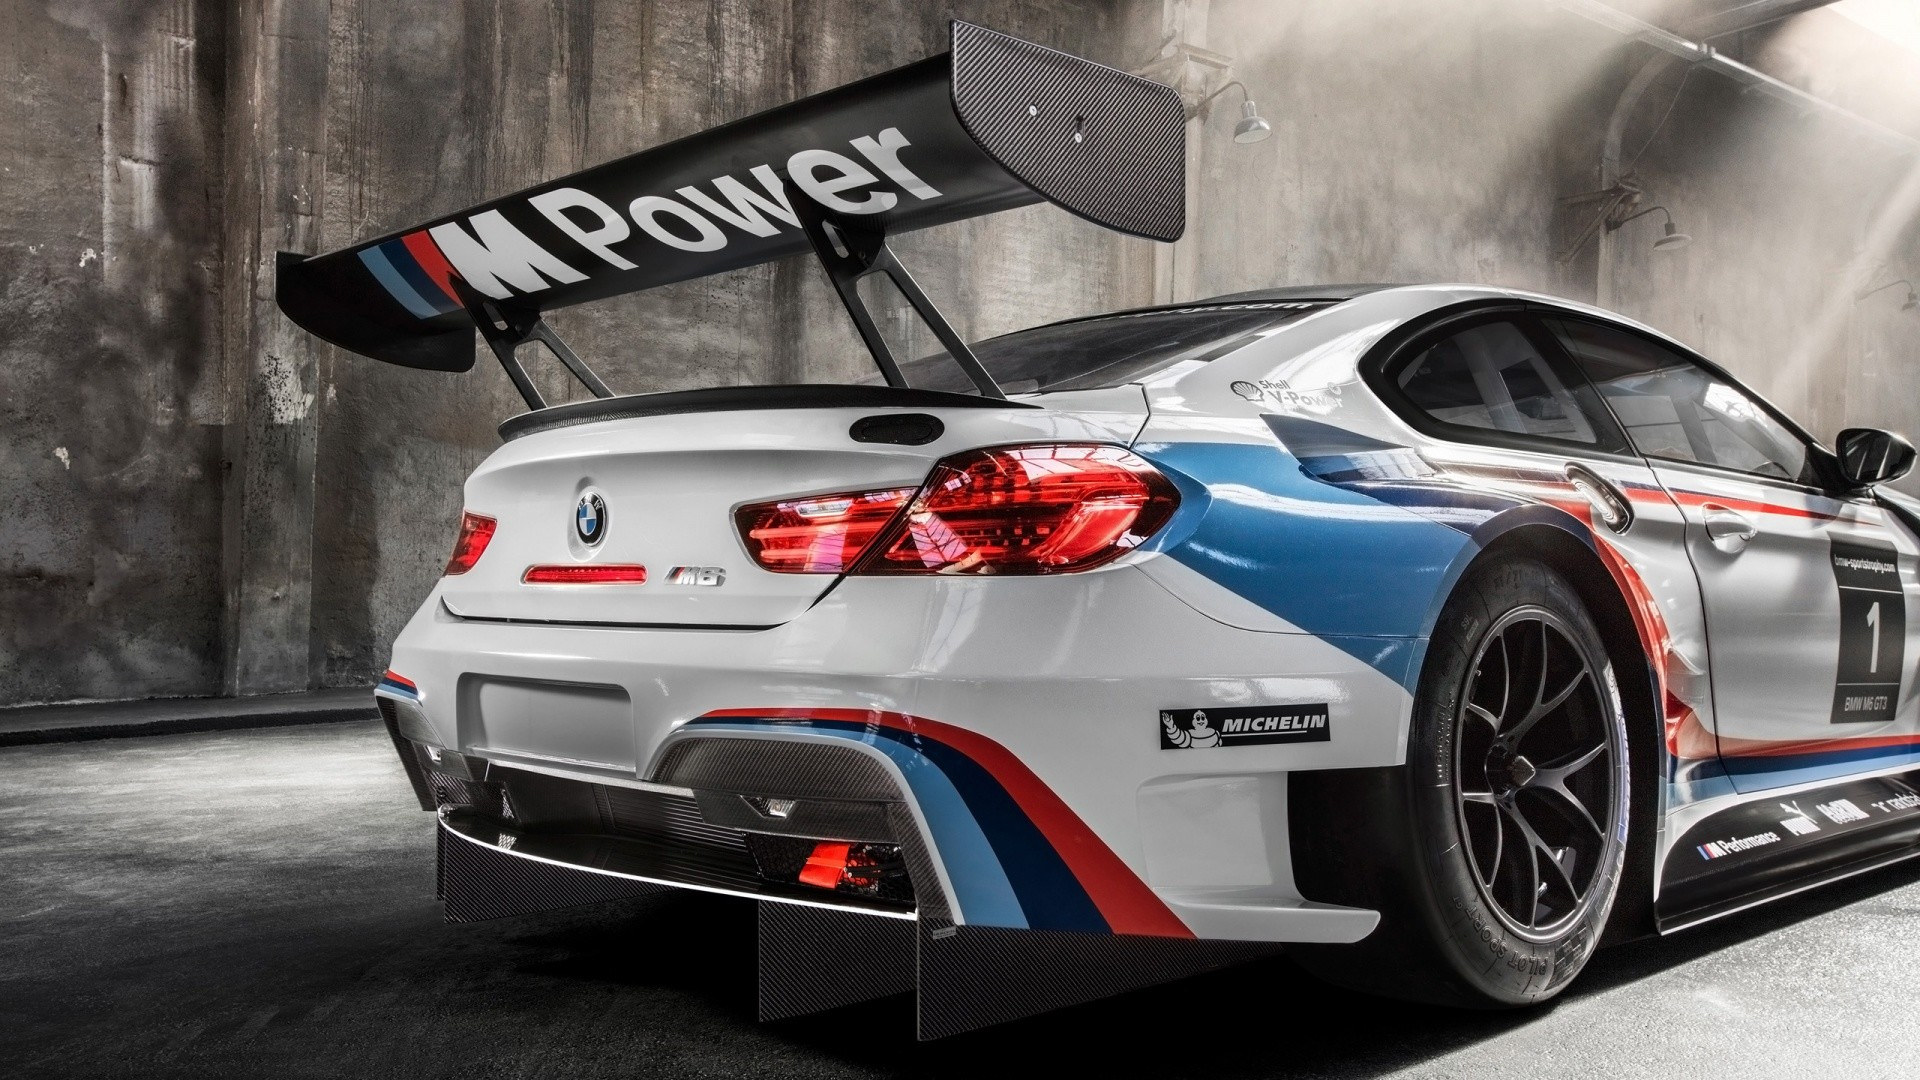 1920x1080 Download now full hd wallpaper bmw m6 back view stickers sport car ...